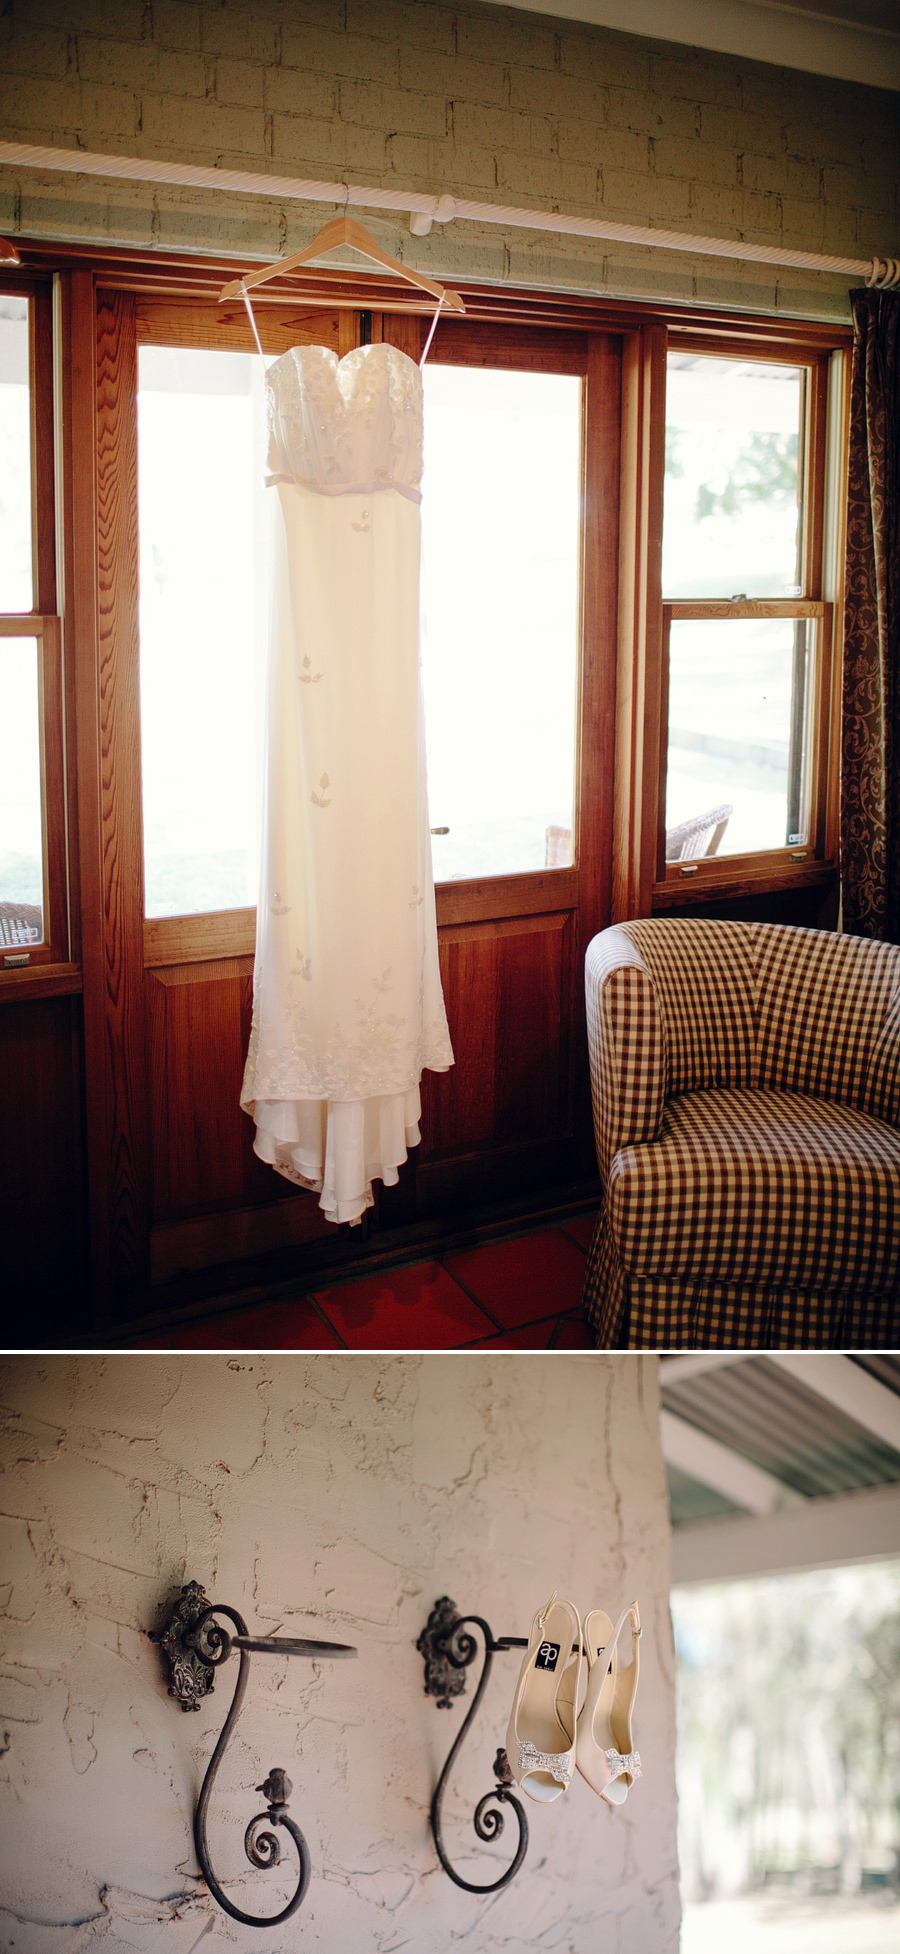 Rustic Wedding Photographer: Wedding dress hanging in window